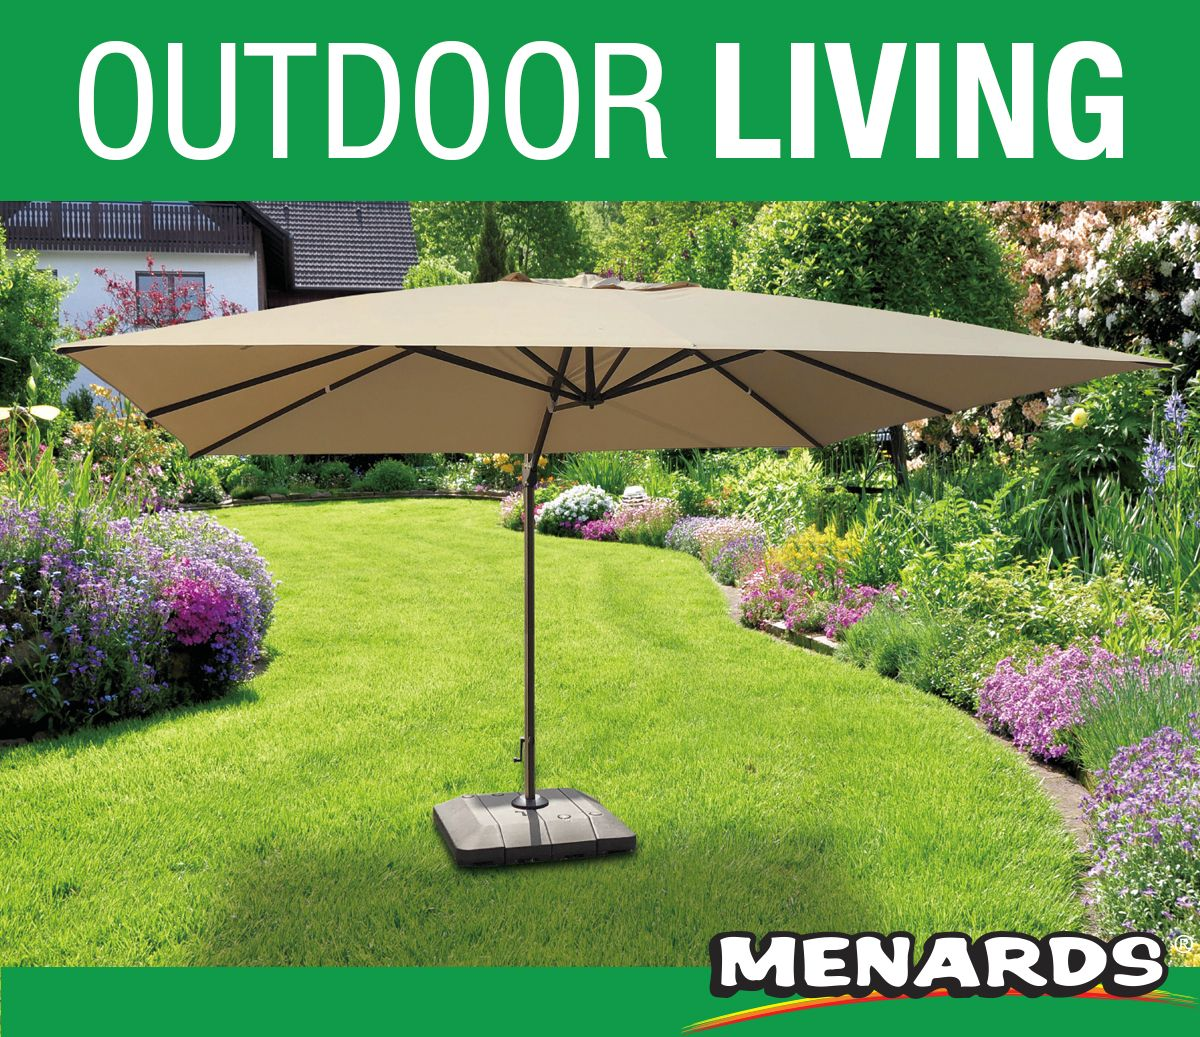 Get Outdoor Ready With A New Backyard Creations Rectangular Offset Umbrella For Your Backyard Keep The Sun O Backyard Creations Outdoor Patio Umbrella Bases